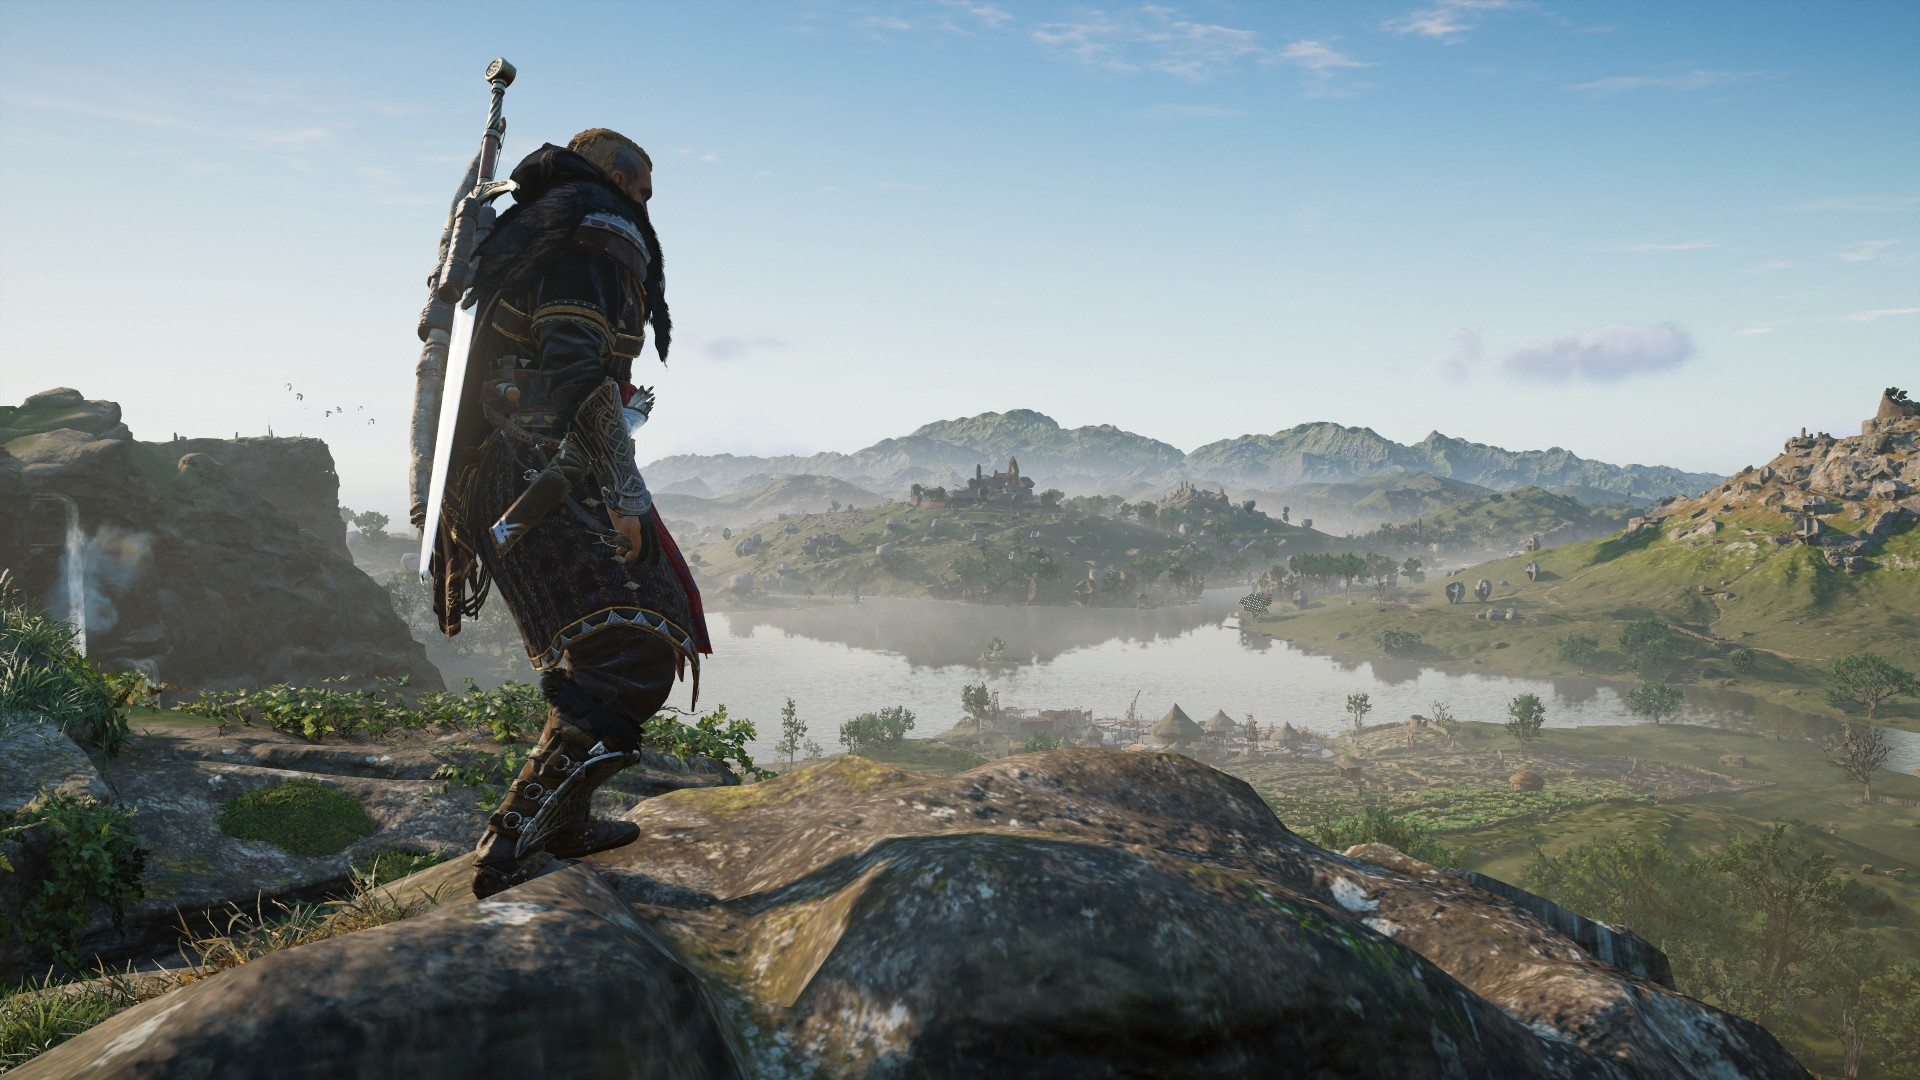 Assassin's Creed Valhalla season pass goes 25% off the same day the first DLC launches